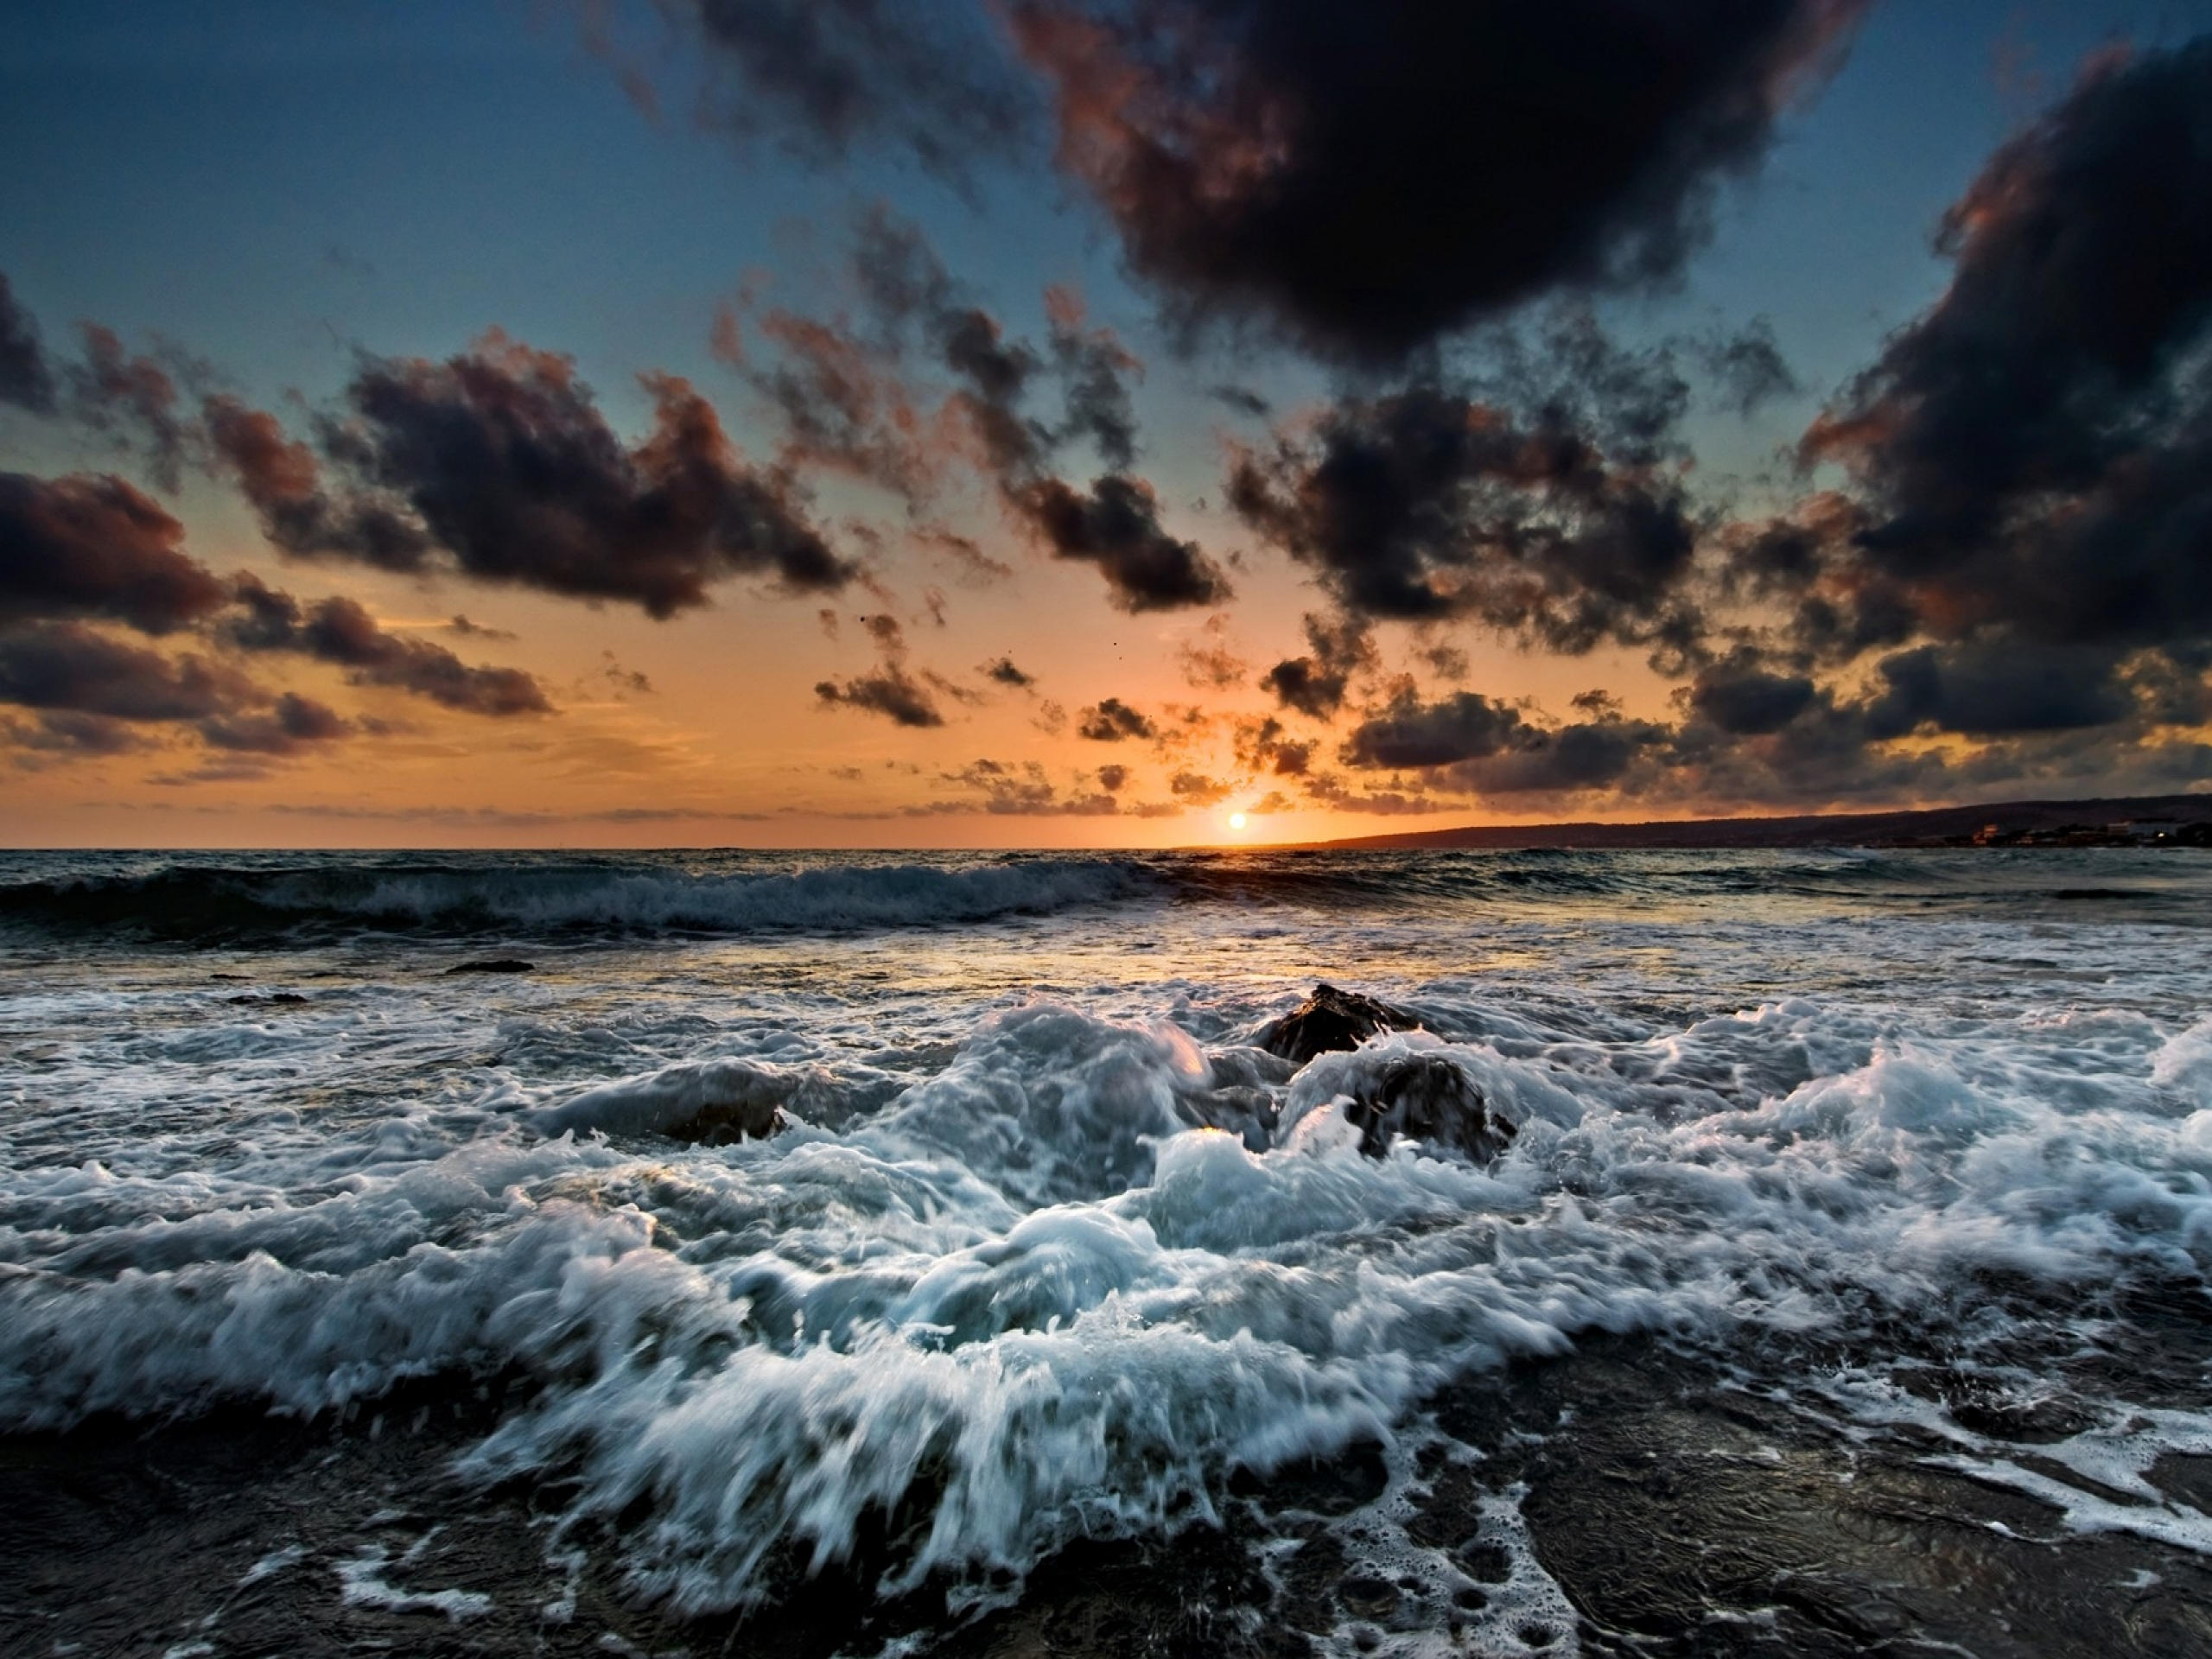 2560x1440 Sunset Clouds Foam Ocean Youtube Channel Cover